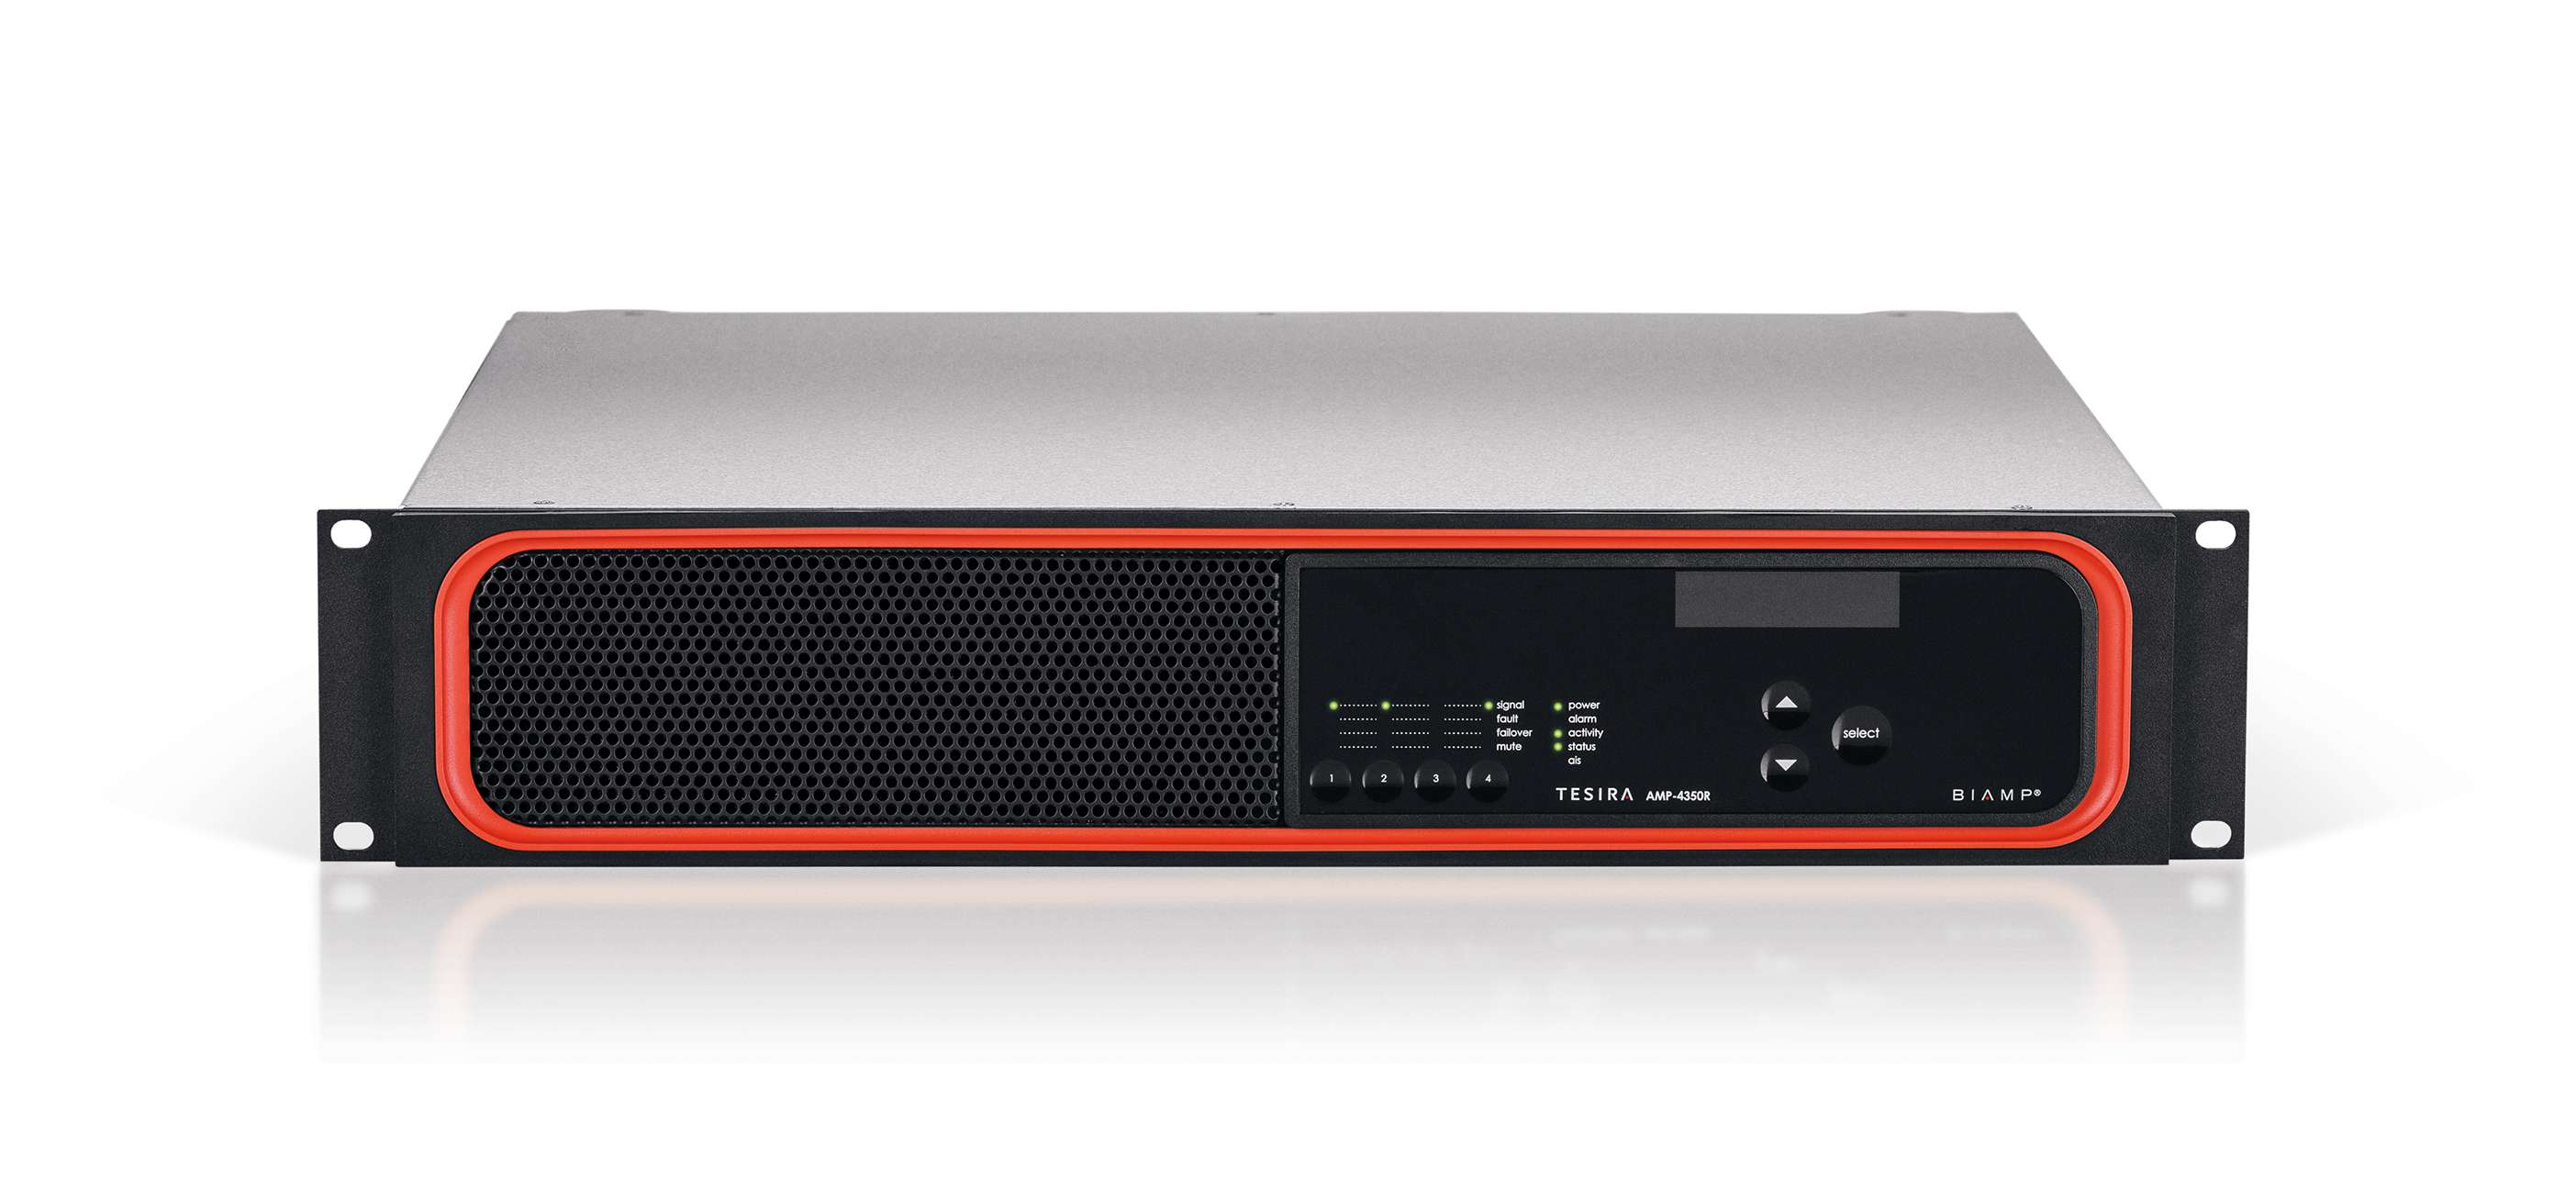 Tesira Amplifier 4350R